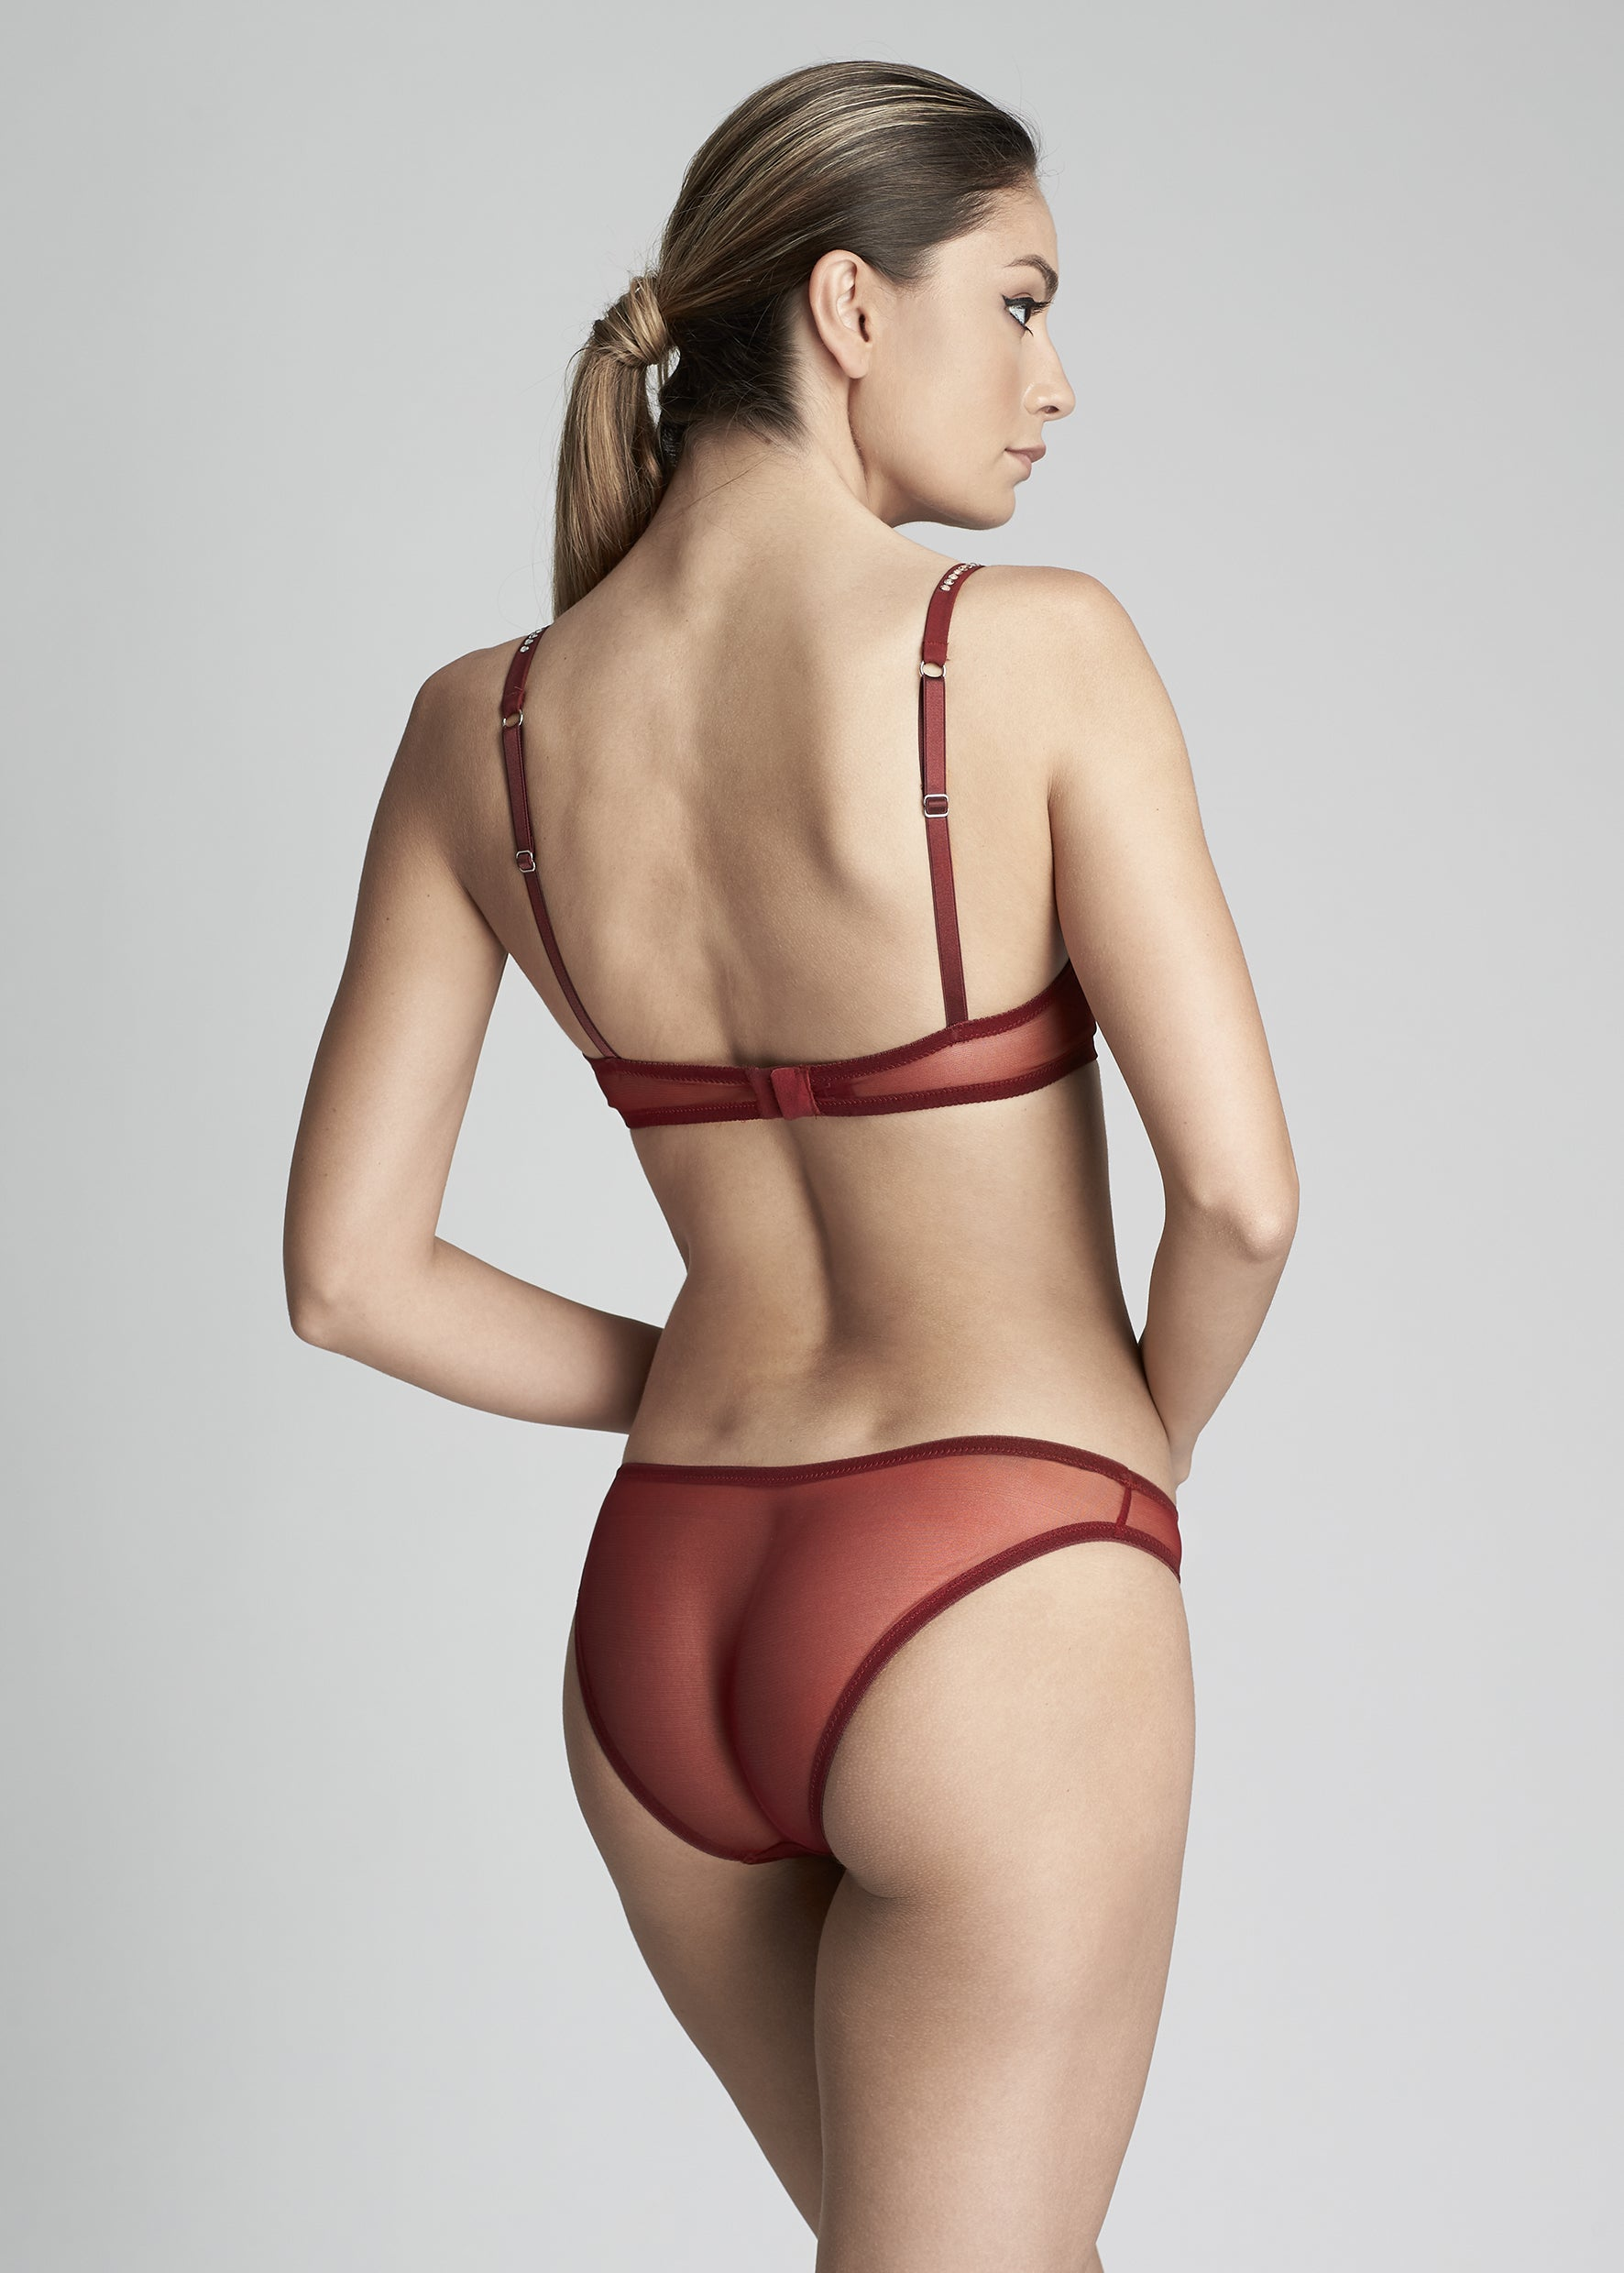 Nuit Interdit Low Waist Brazilian Brief in Ruby